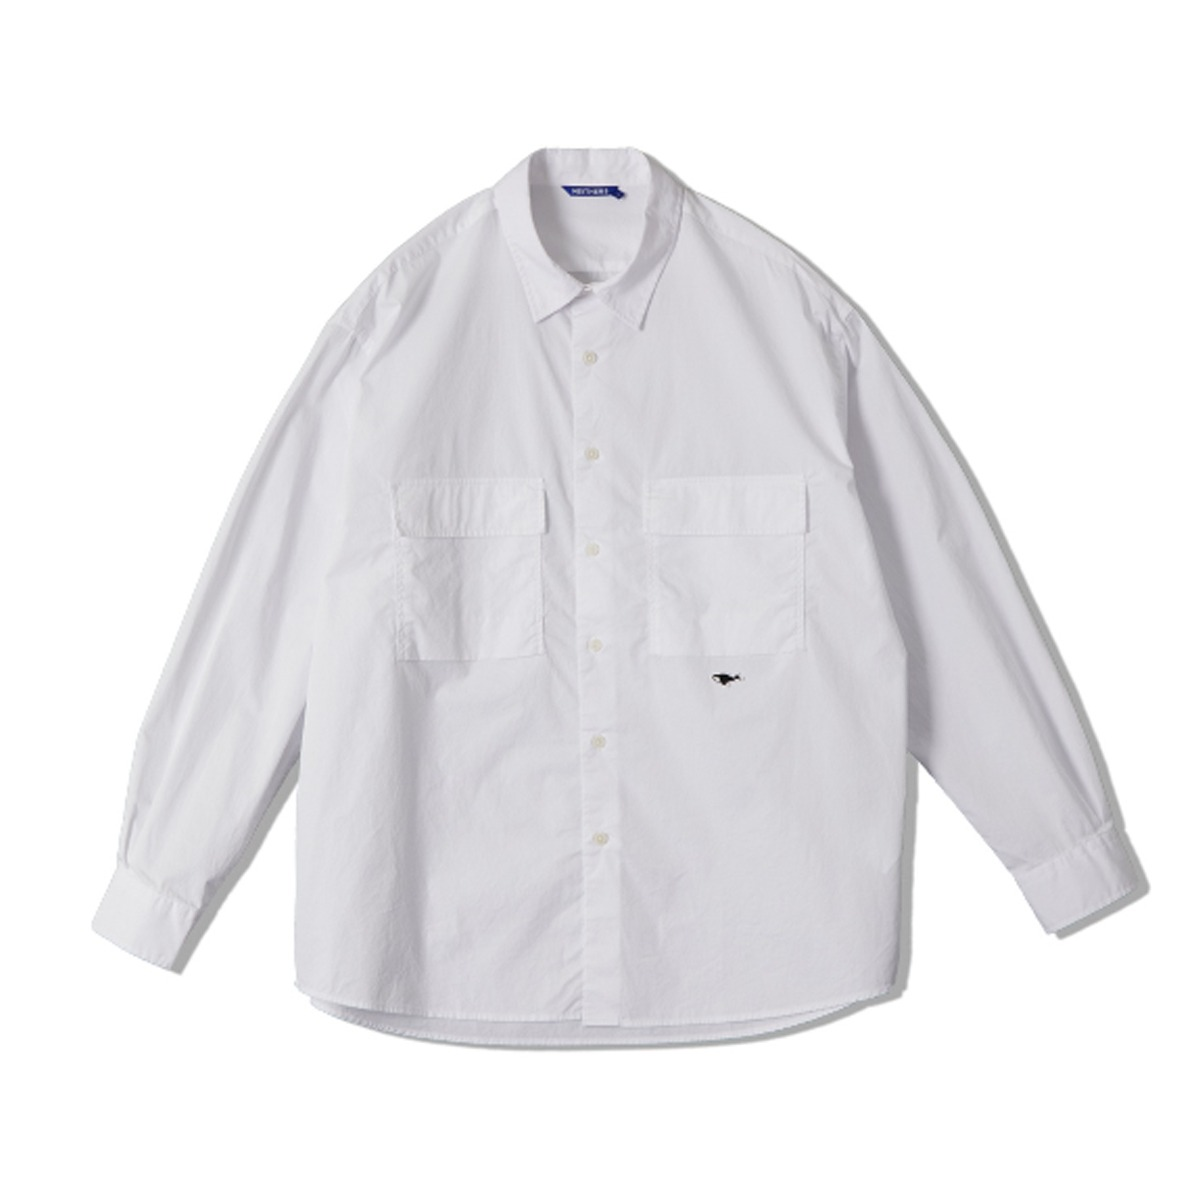 [NEITHERS] 2-POCKET WIDE SHIRT 'OFF WHITE'